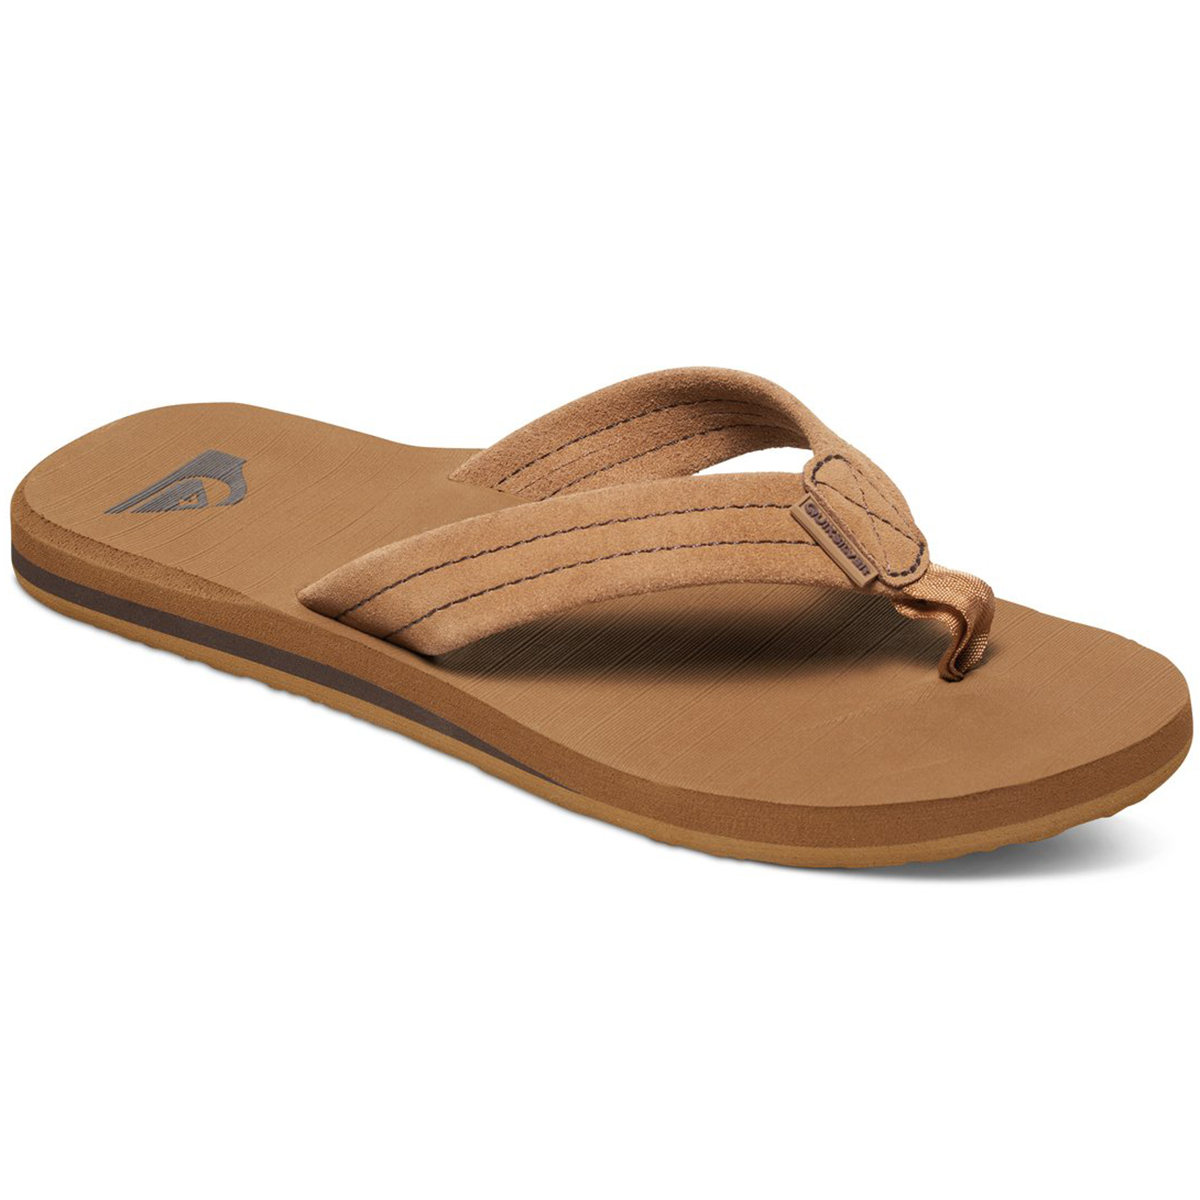 Quiksilver Men's Carver Suede Sandals - Brown, 12